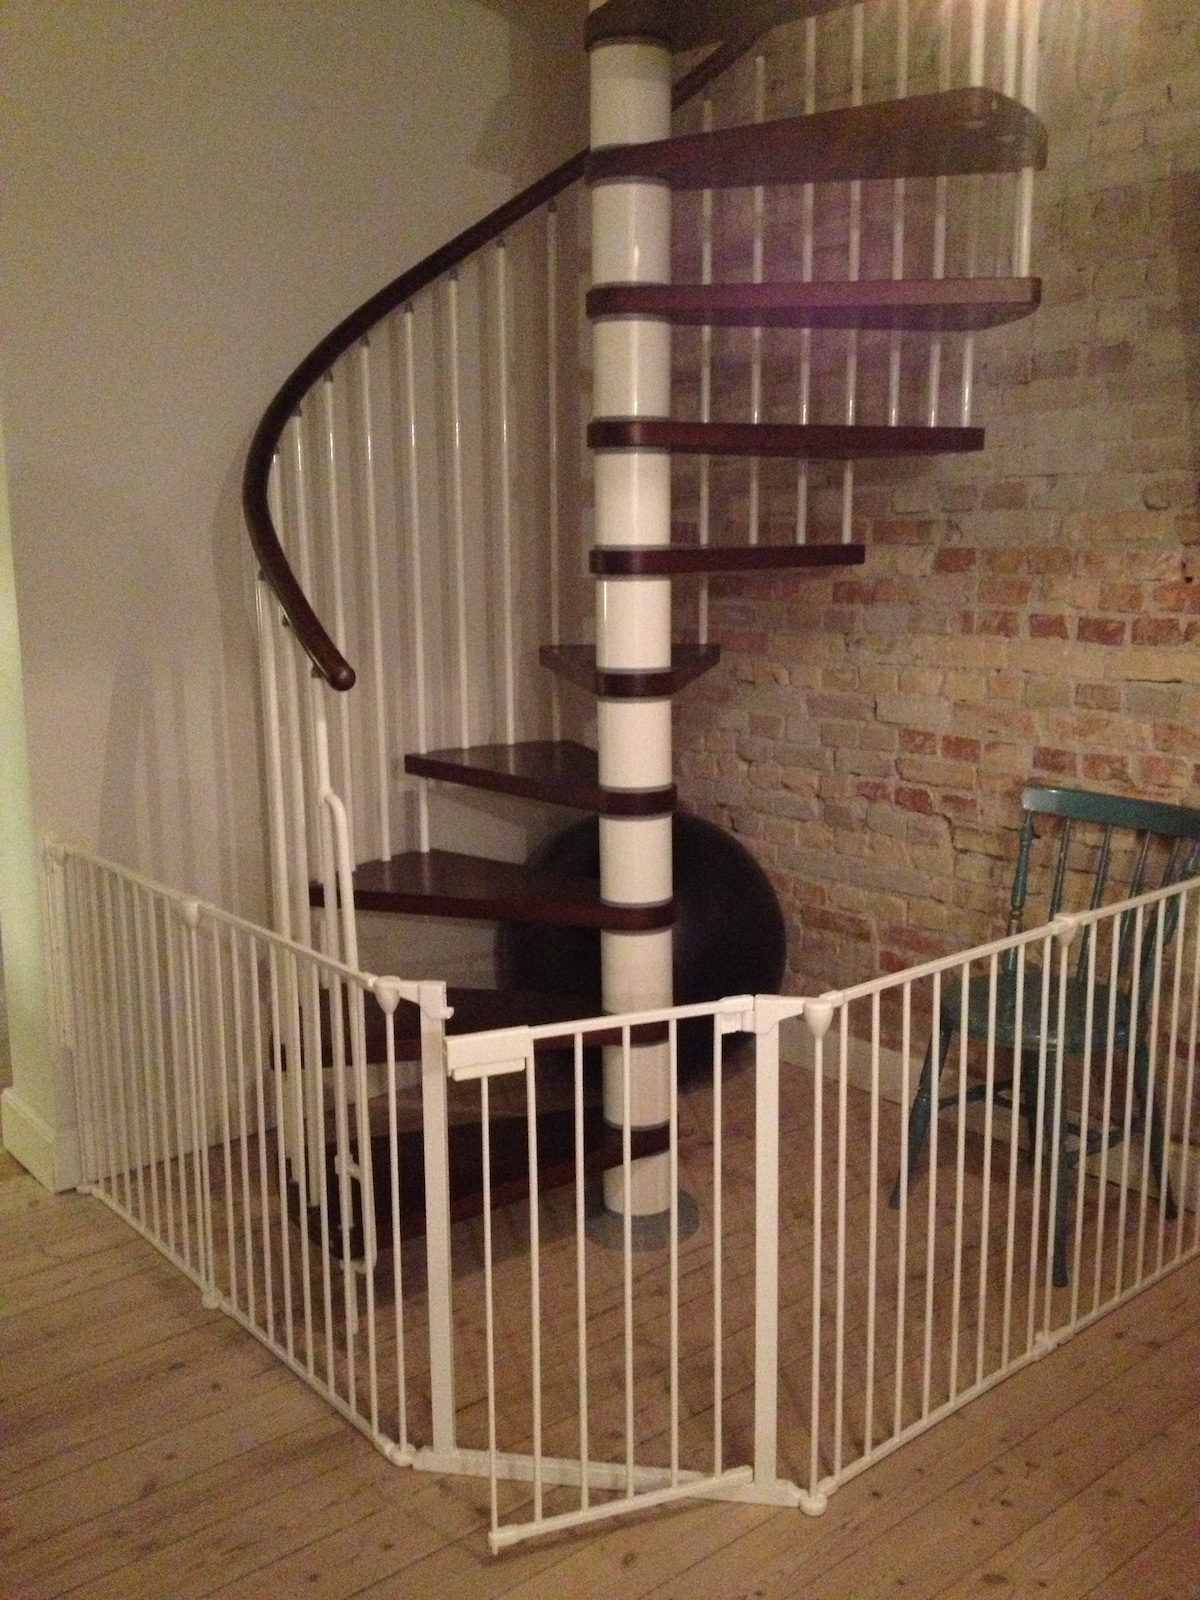 Staircase - now gated